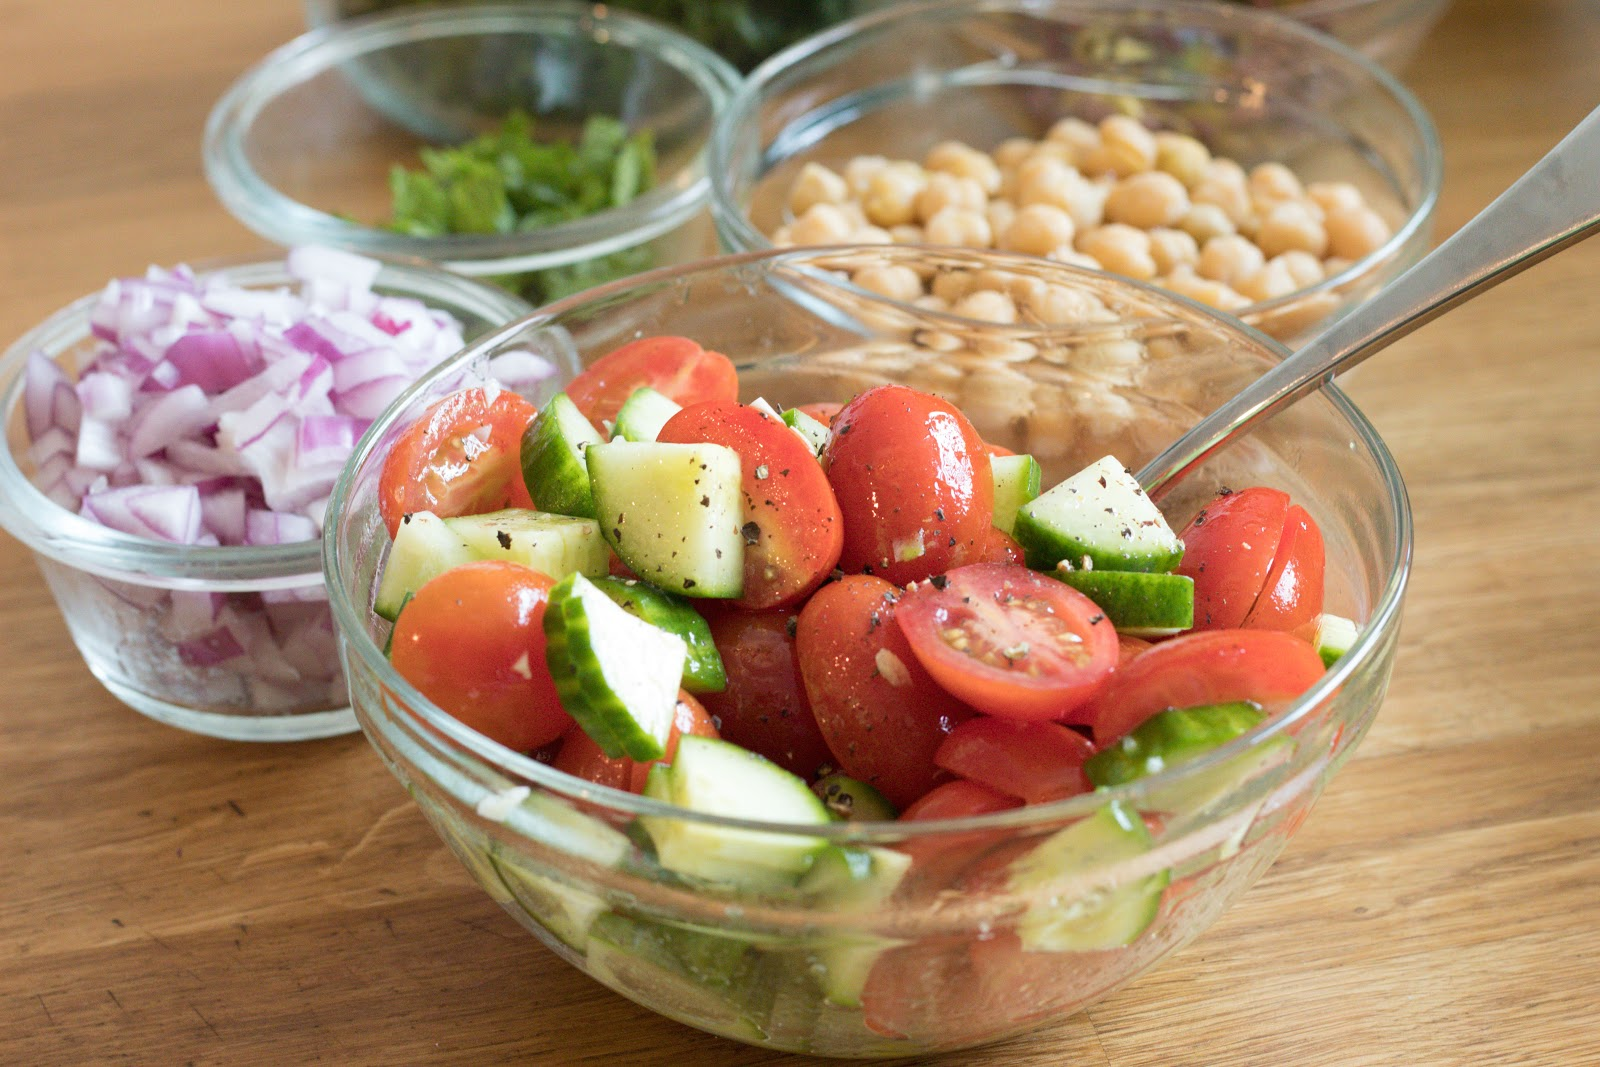 Tomatoes and Cucumbers Patience & Pearls